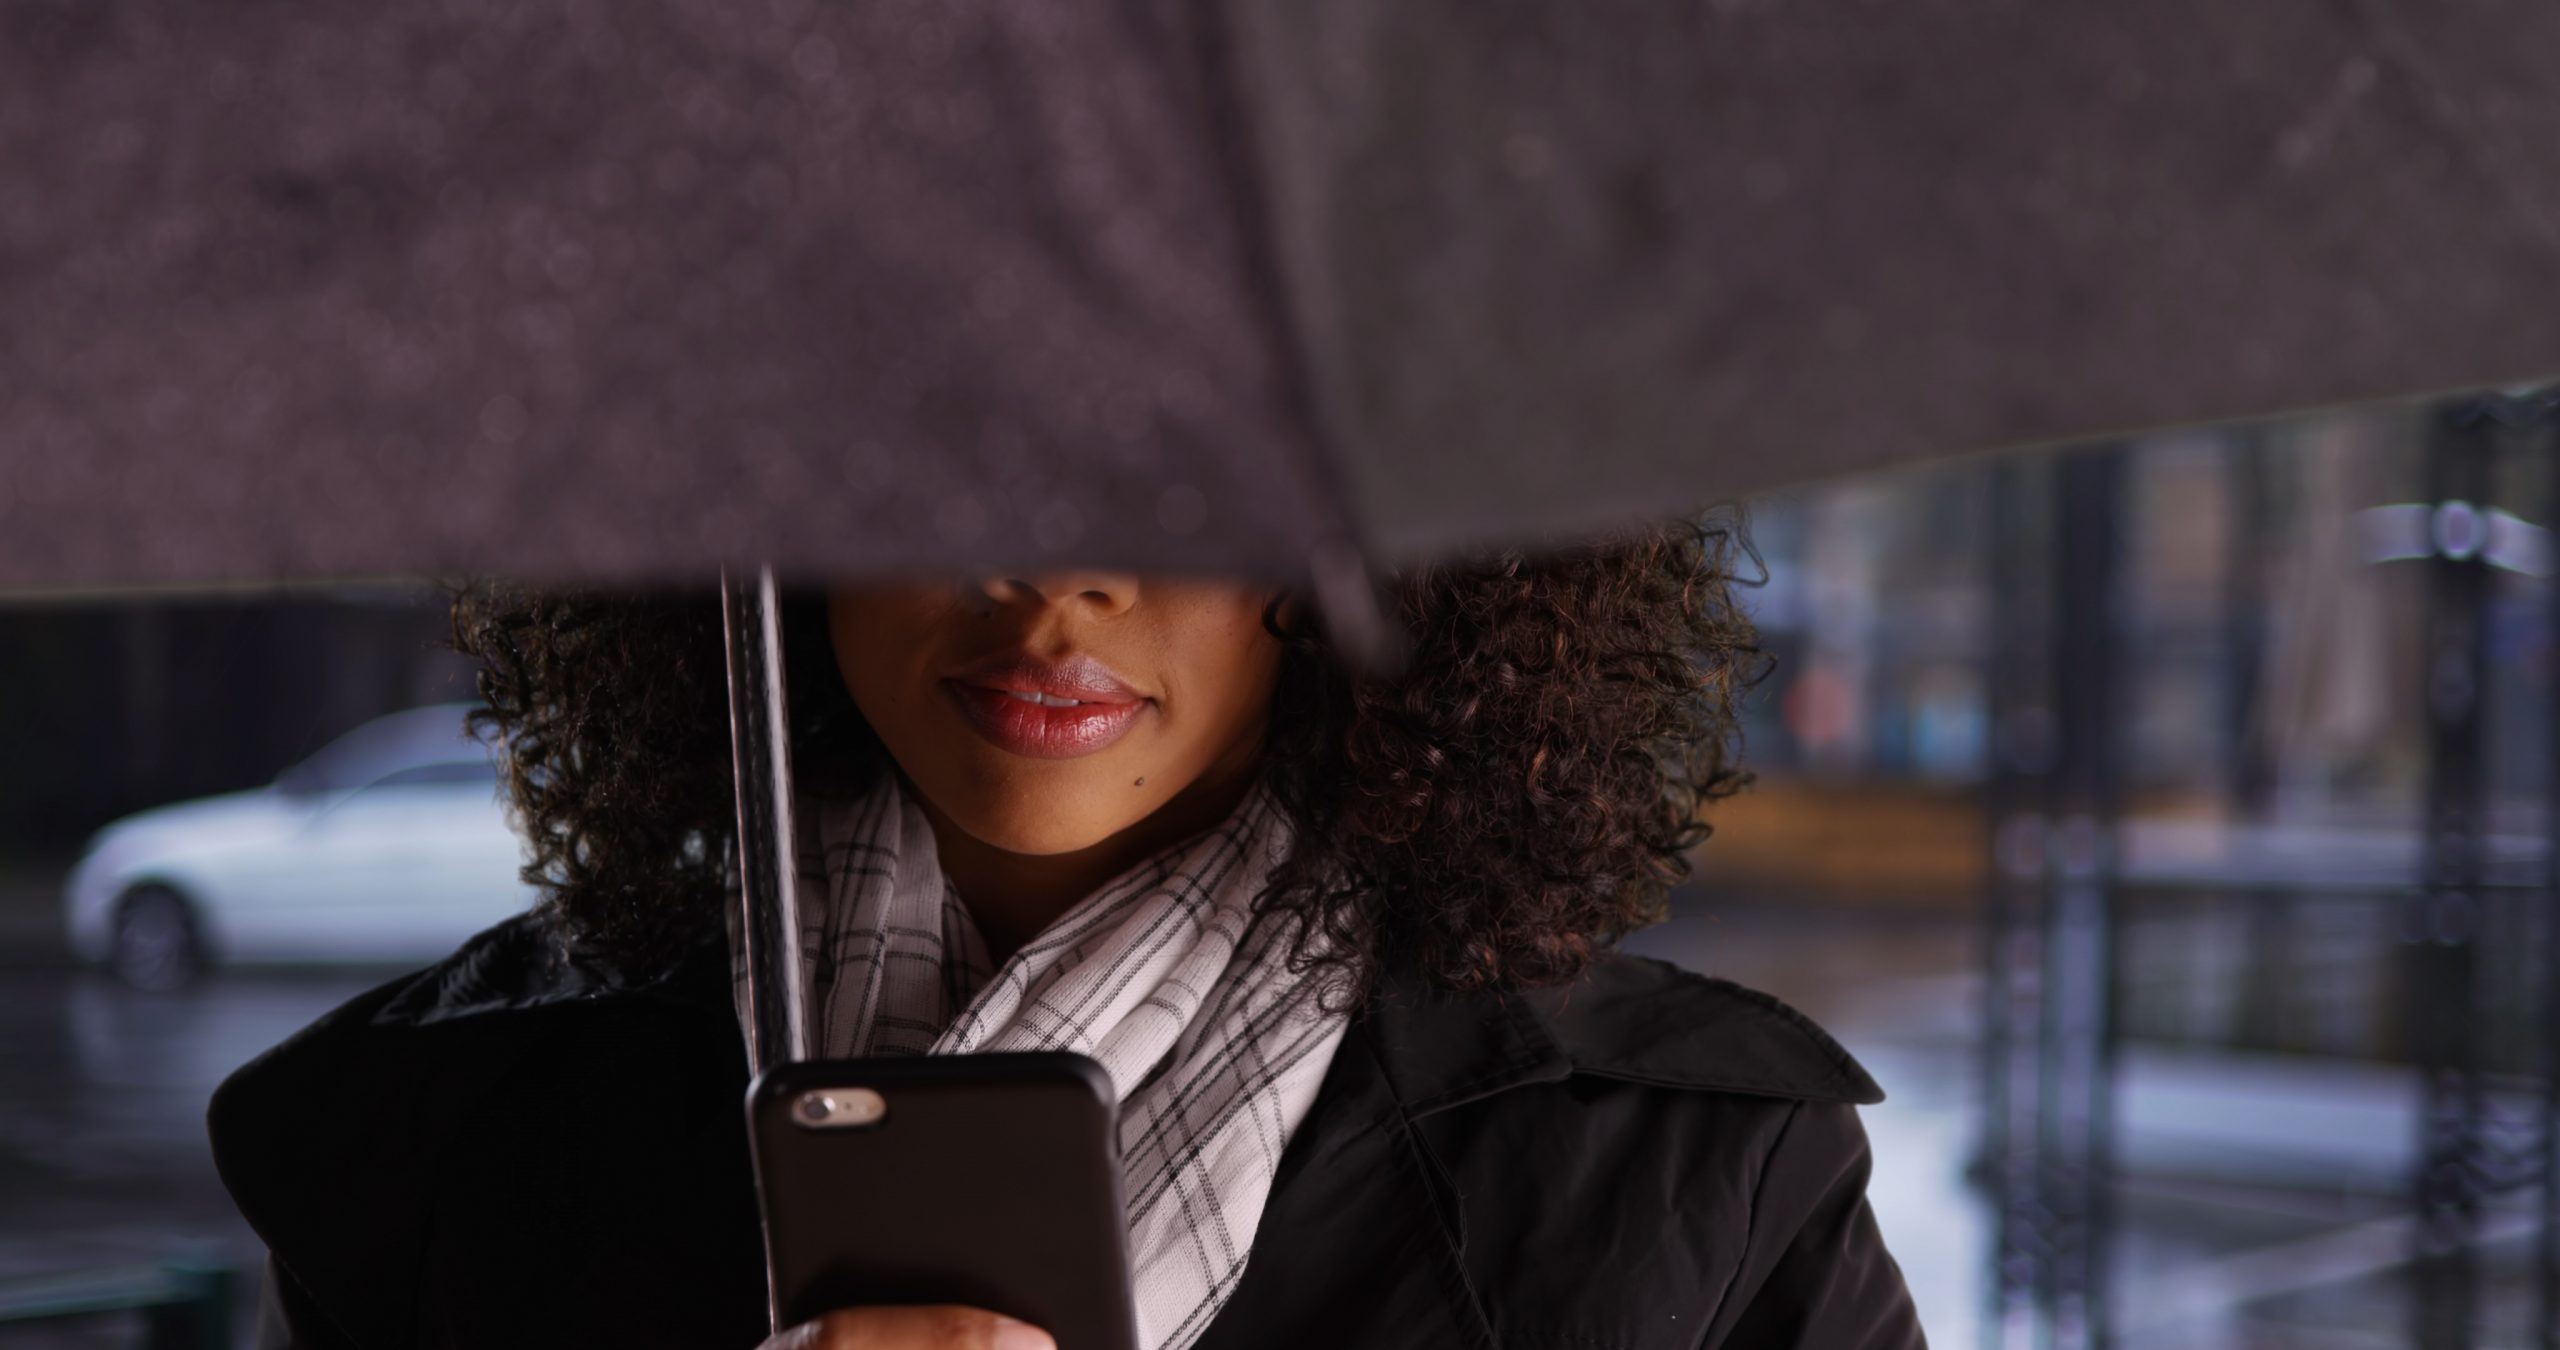 mysterious,african,woman,with,umbrella,checking,mobile,device,in,the